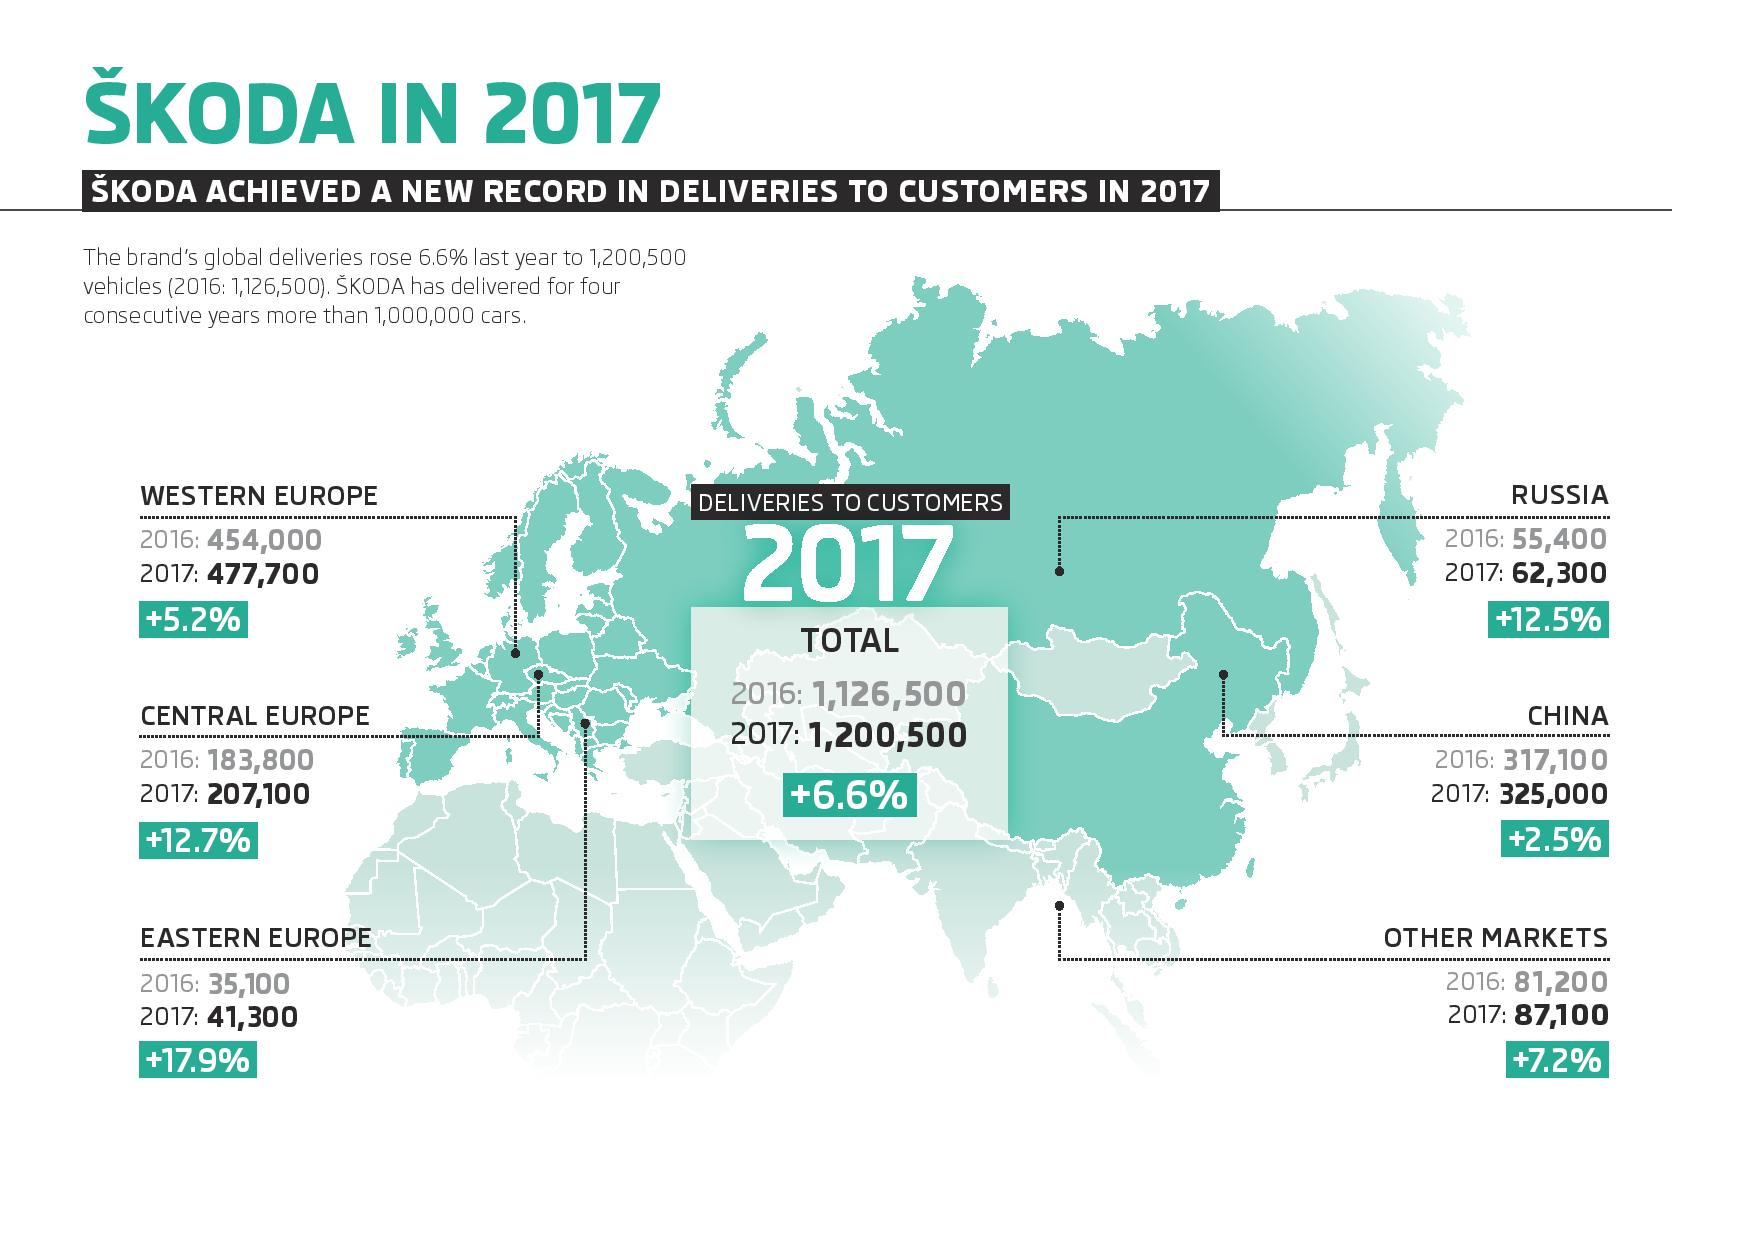 180116-Infographic-SKODA-Deliveries-to-customers-in-2017-Regions-page-001